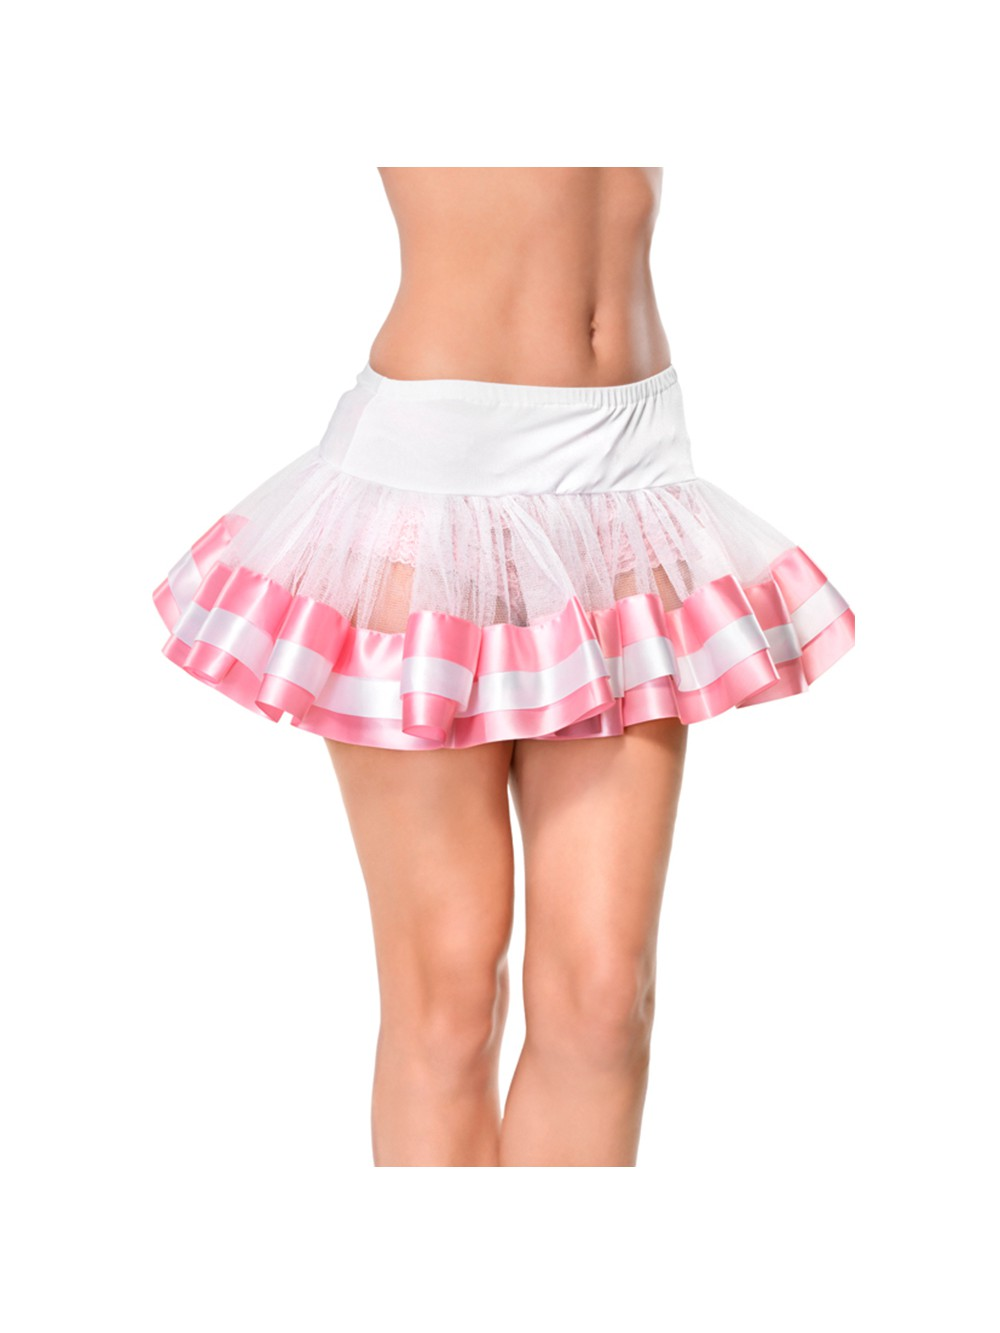 WHITE TULLE SKIRT WITH SATIN DETAILS PINK 0714718408149